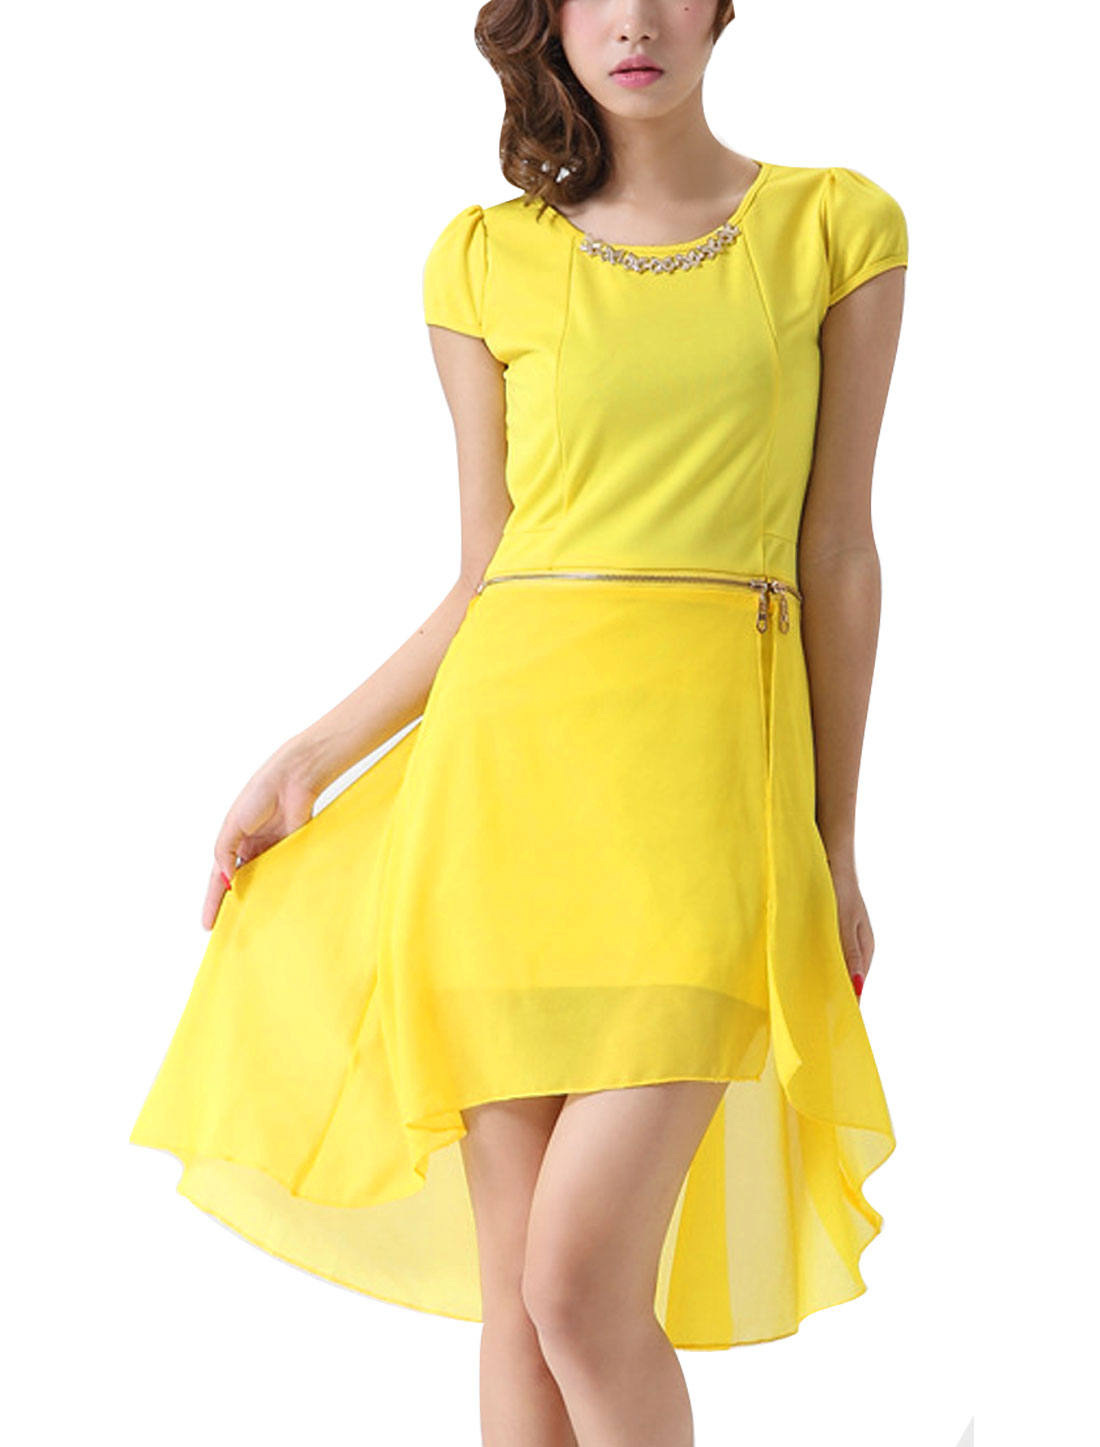 Ladies Chic Round Neck Cap Sleeve Asymmetric Hem Yellow Mini Dress S